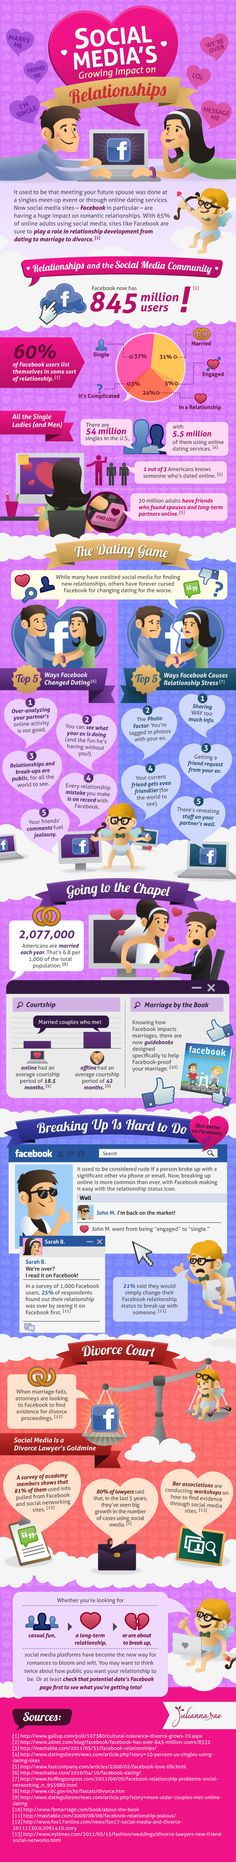 Social Media's Growing Impact On Relationships - Infographic